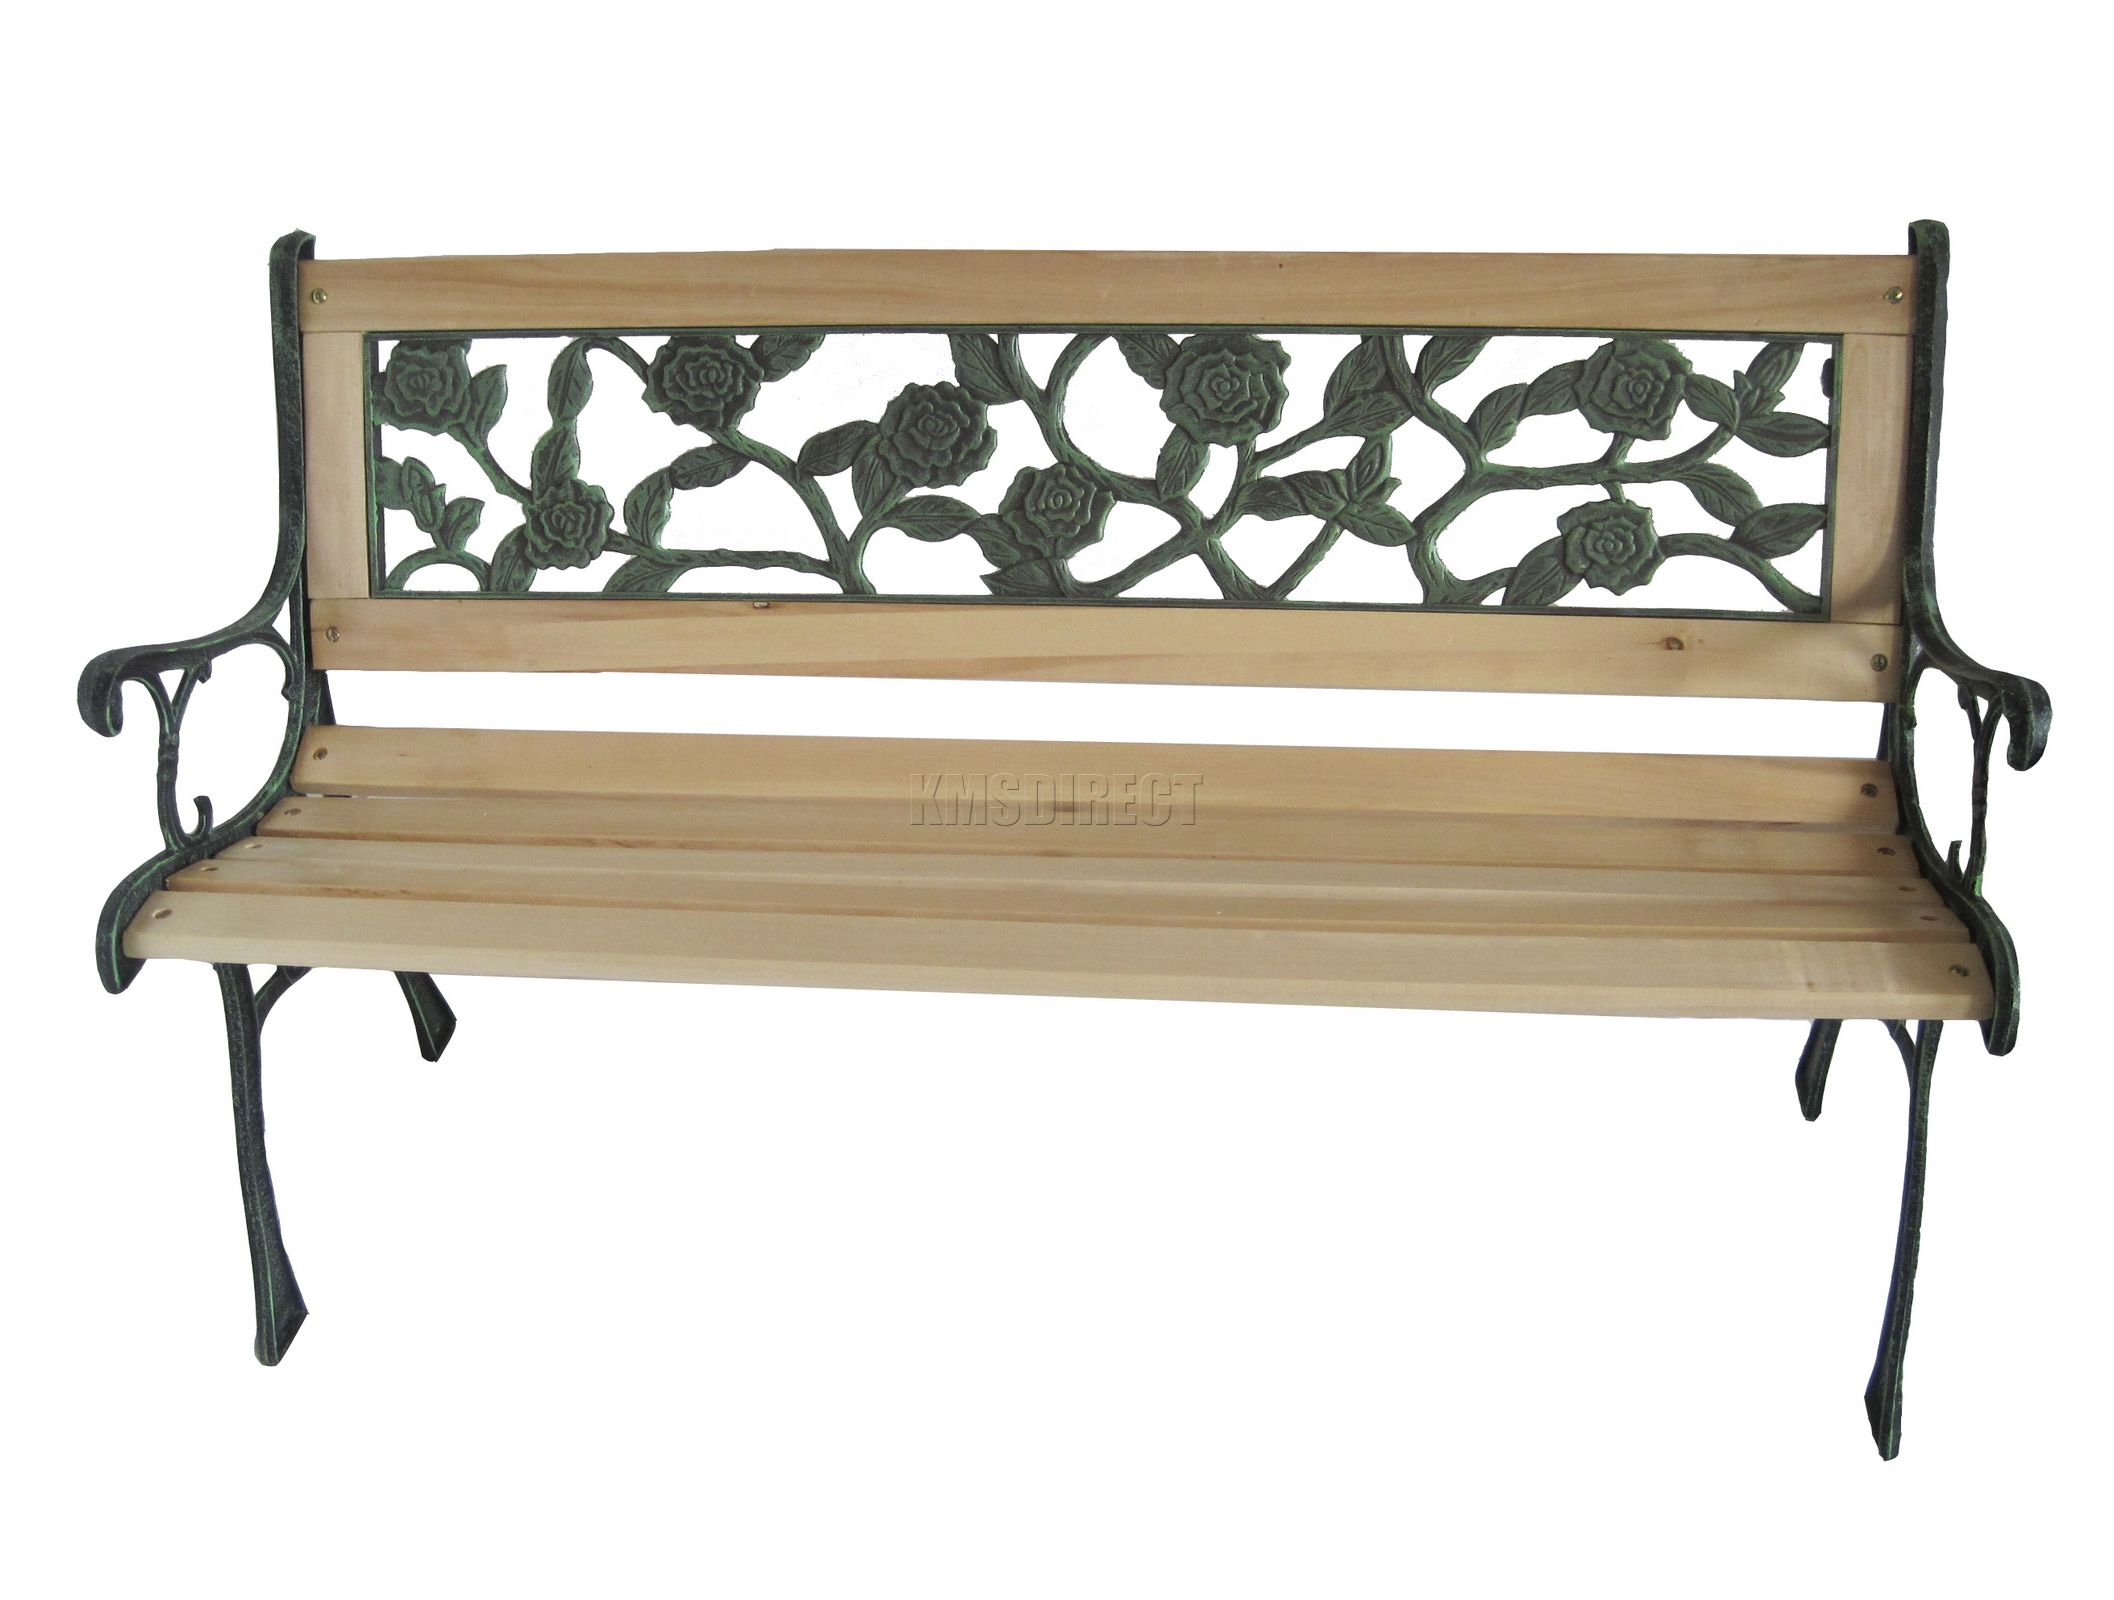 KMS-3-Seater-Outdoor-Wooden-Garden-Bench-with-Cast-Iron-Legs-Park-Seat-Furniture